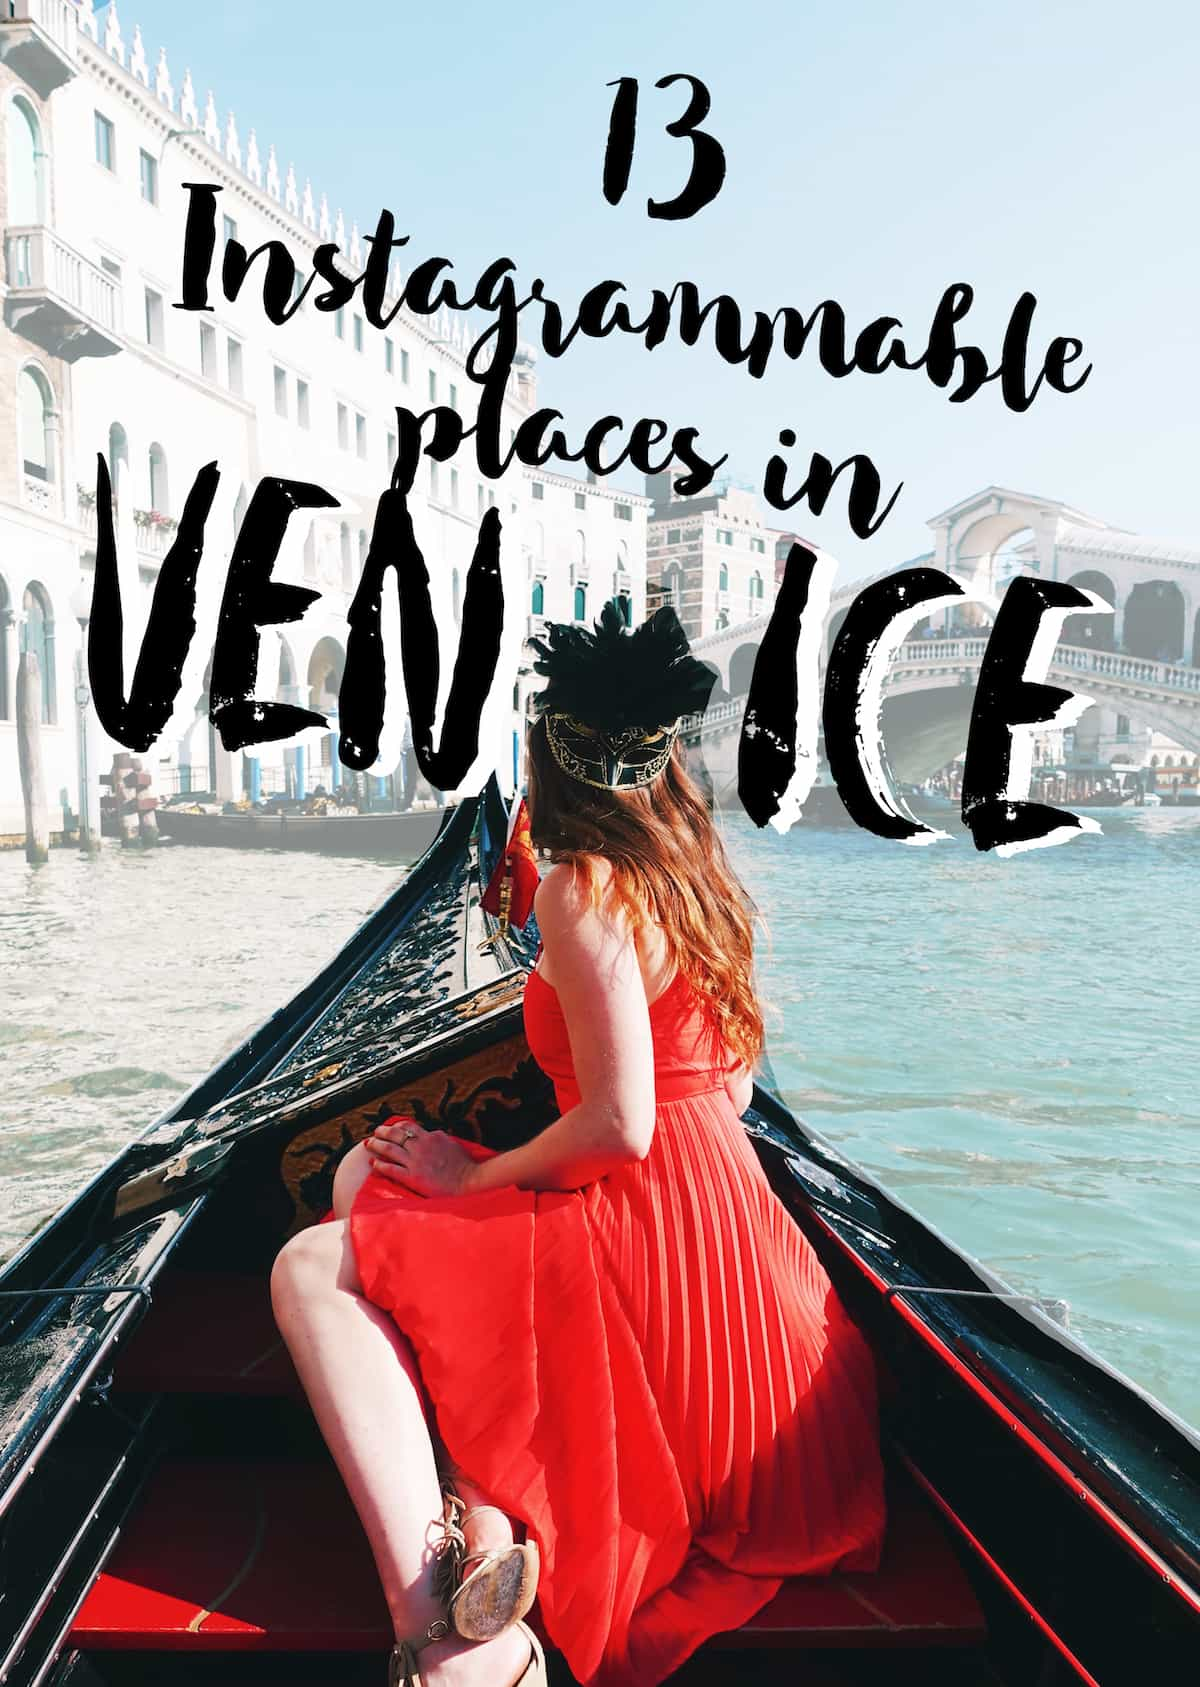 instagrammable places in venice italy